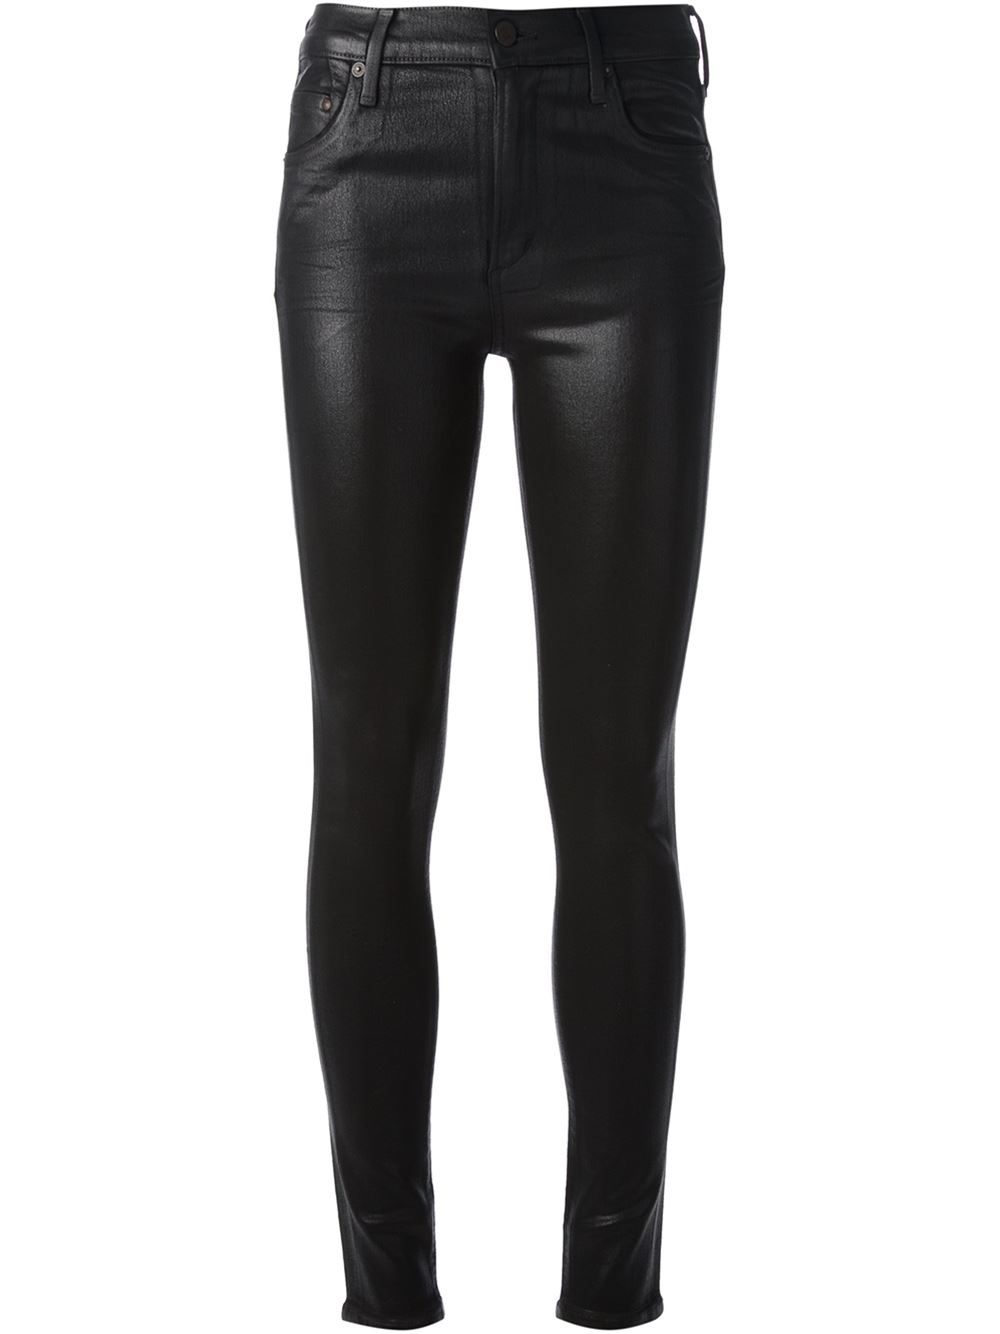 Fitted through the hip and thigh, narrows from knee to ankle, the Skinny slims and elongates the leg.